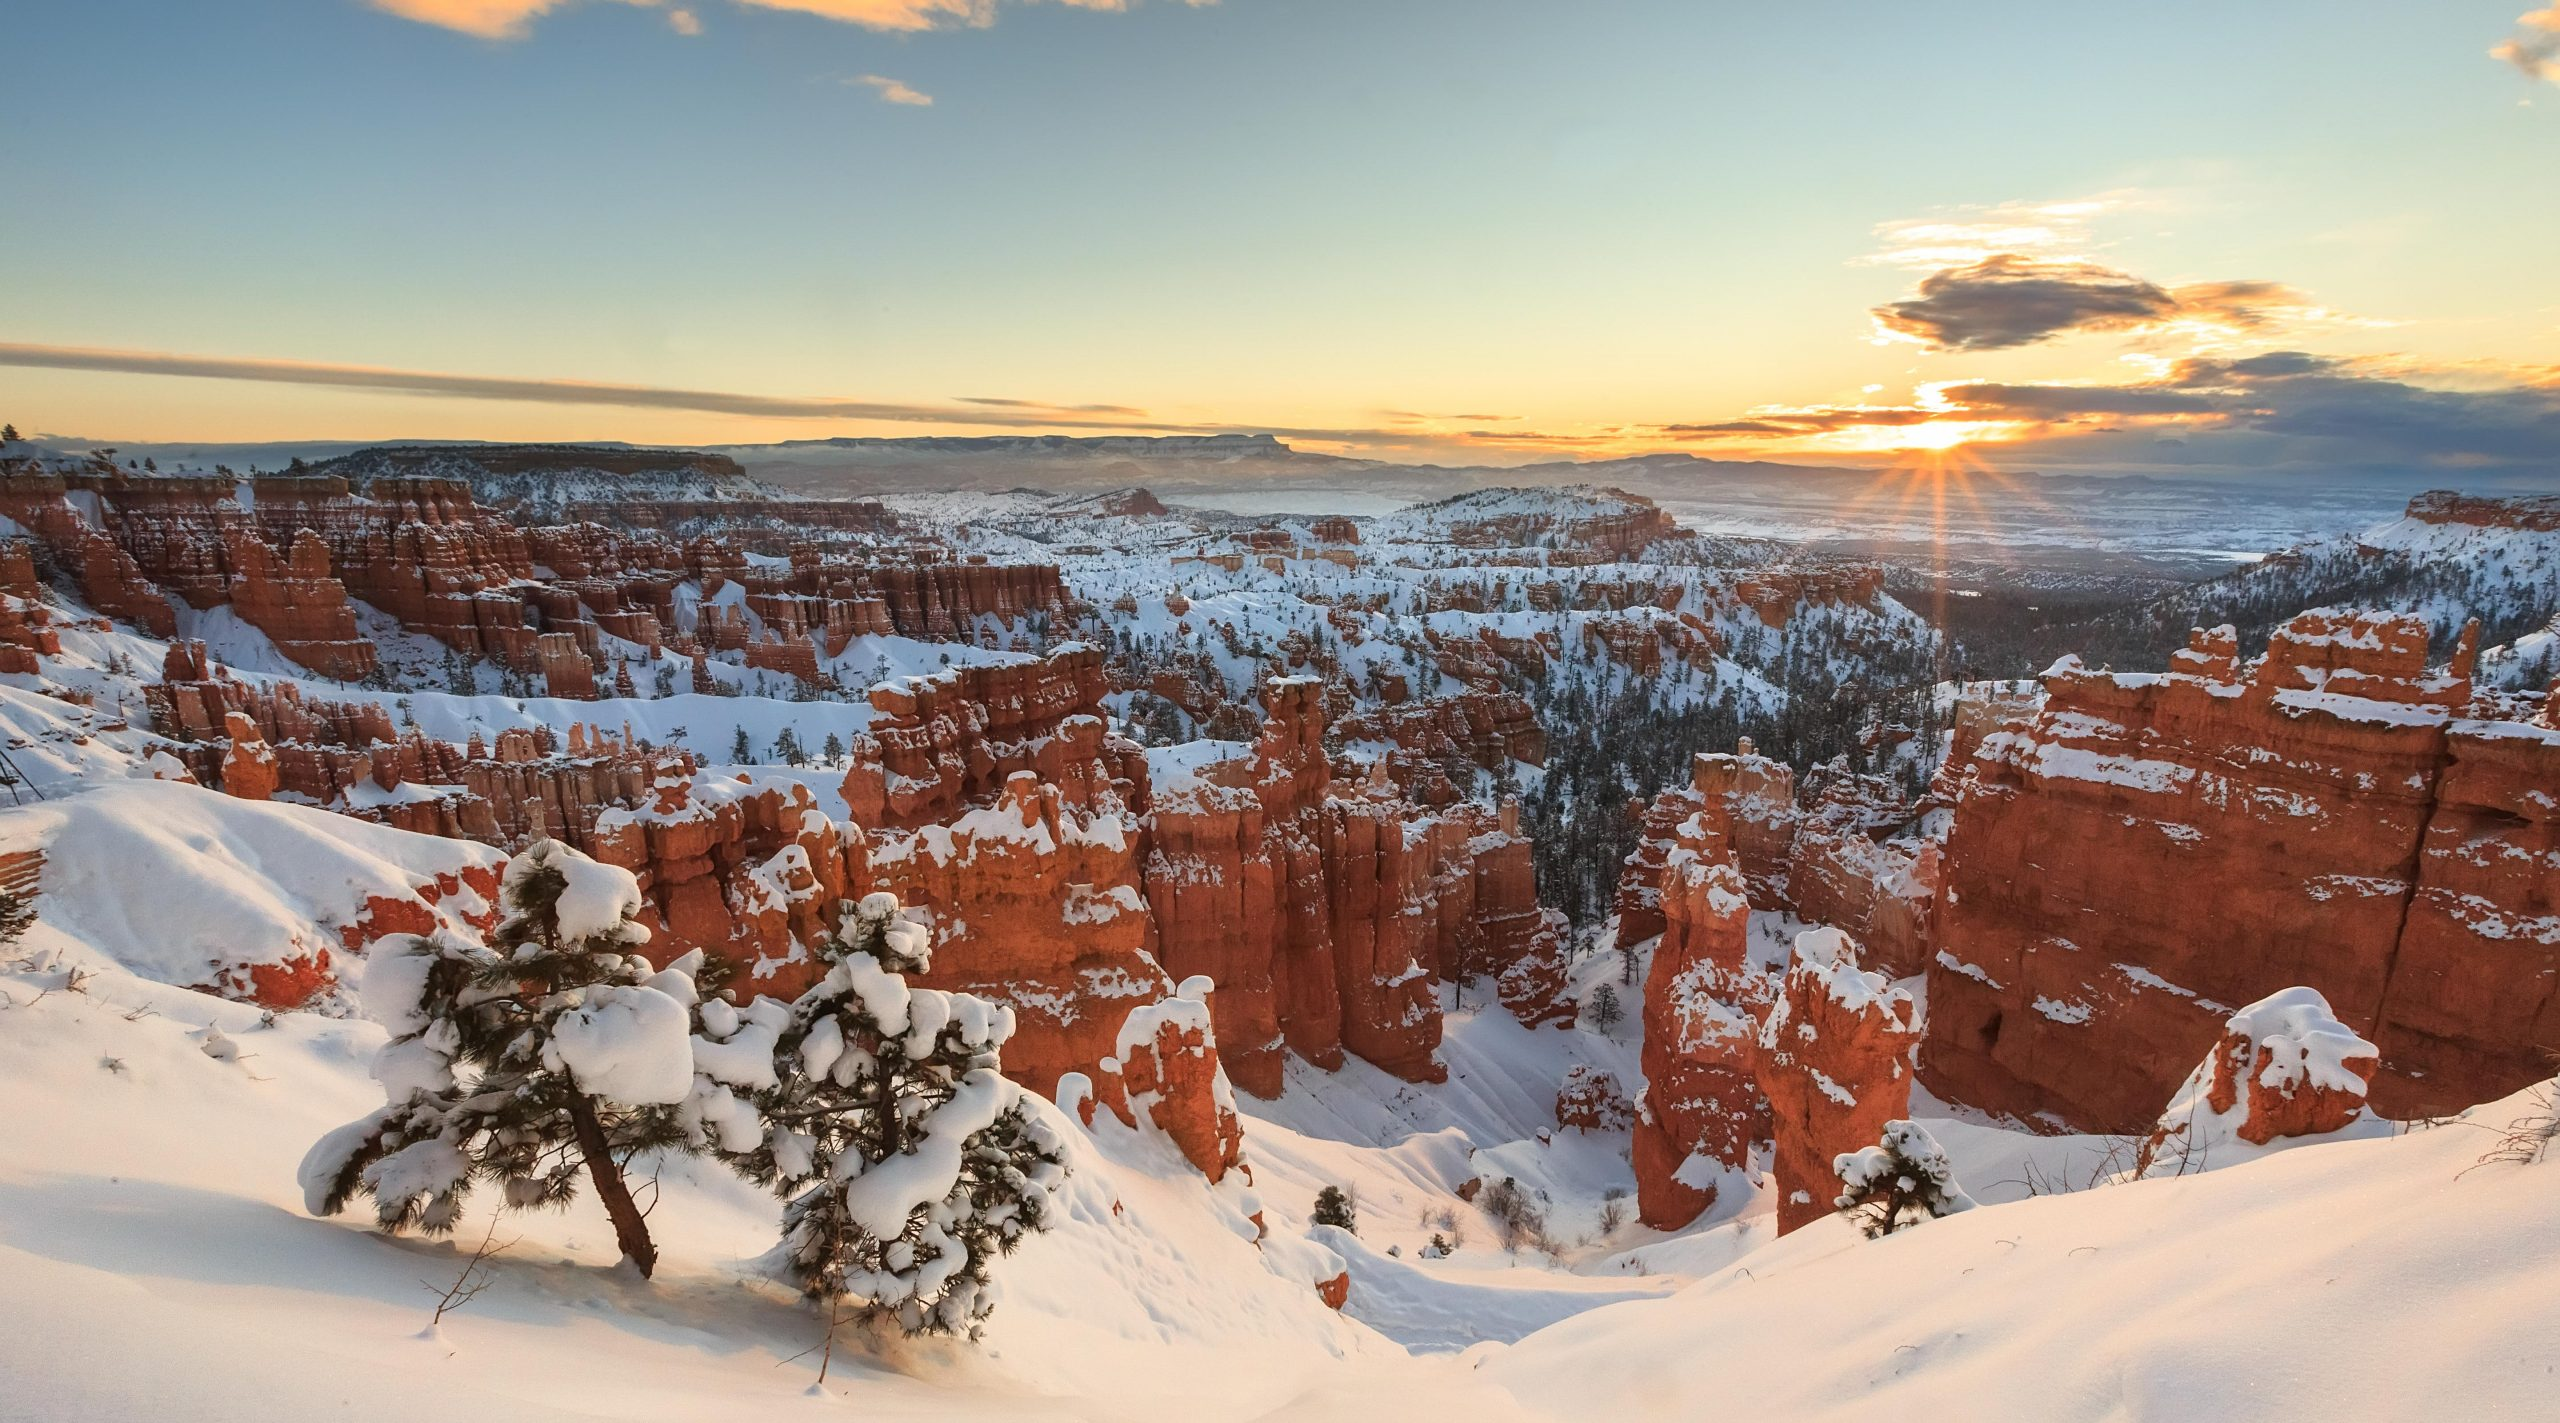 This was the first sunrise after the largest snow storm of the 2014-2015 winter season at Bryce Canyon. The temperatures were cold and the wind was whipping the snow, but the fist rays of sun did not disappoint.